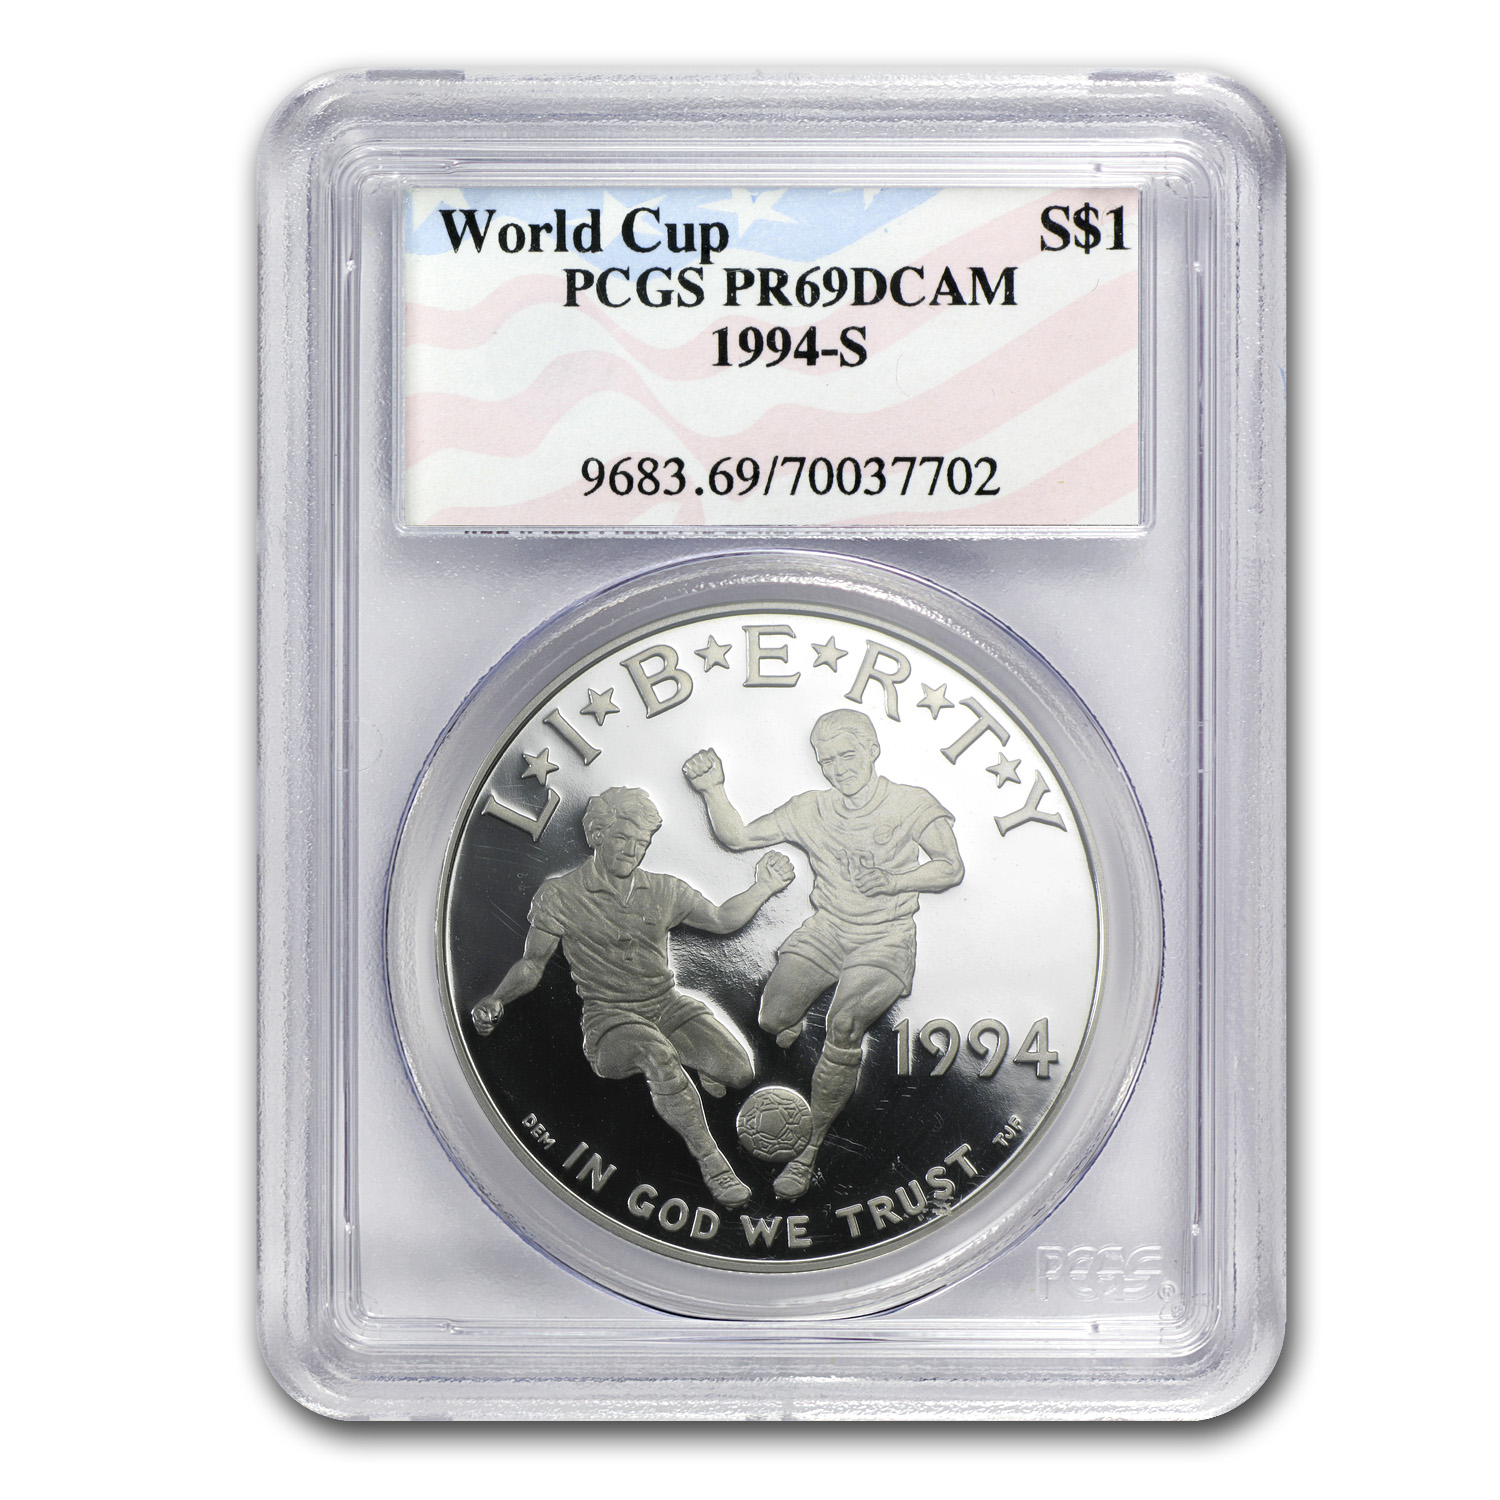 1994-S World Cup $1 Silver Commemorative PR-69 PCGS